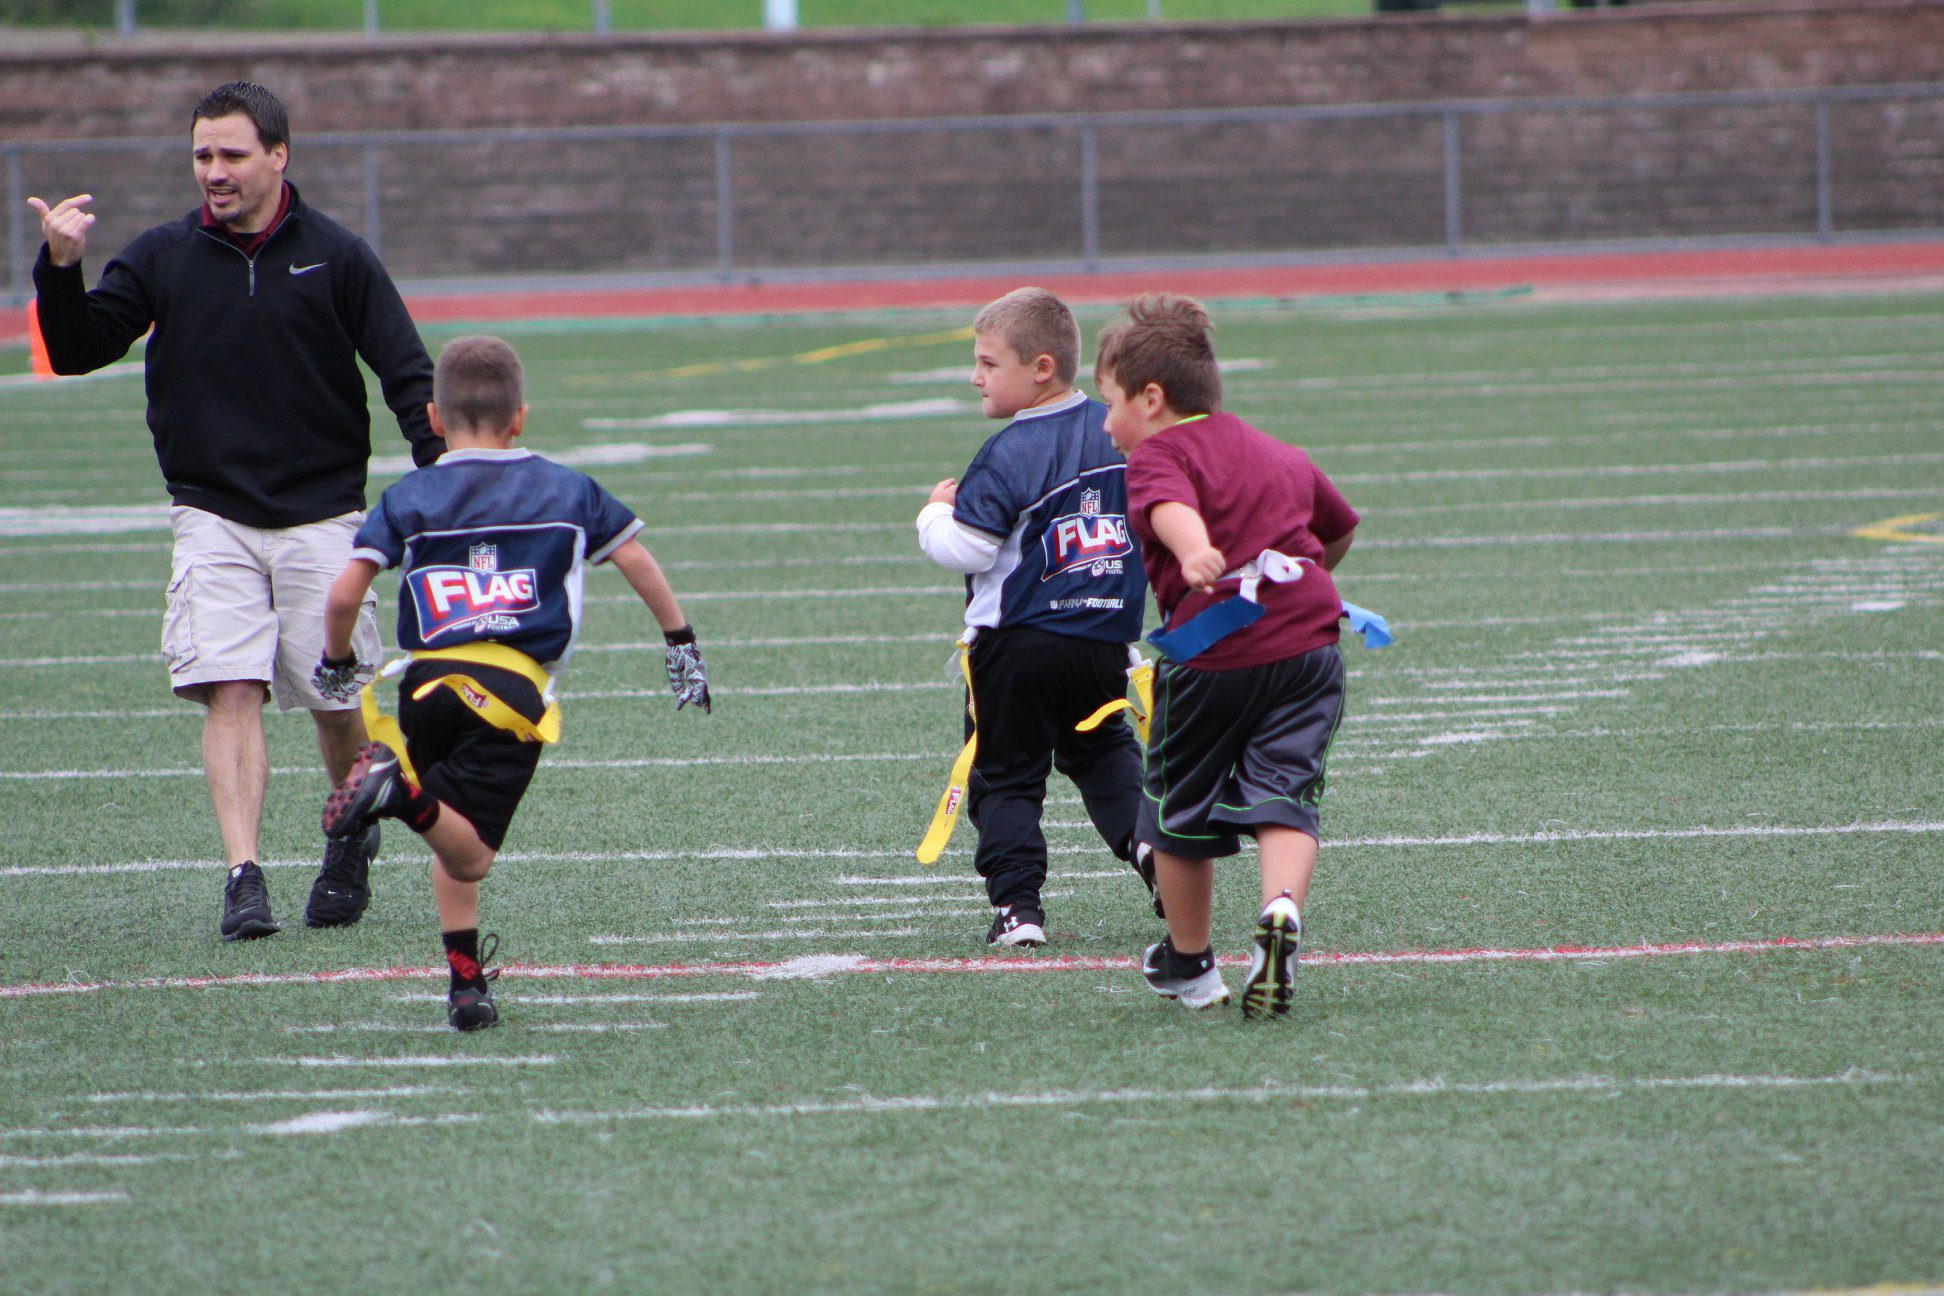 Kyle Youngs coaching a youth sports team.